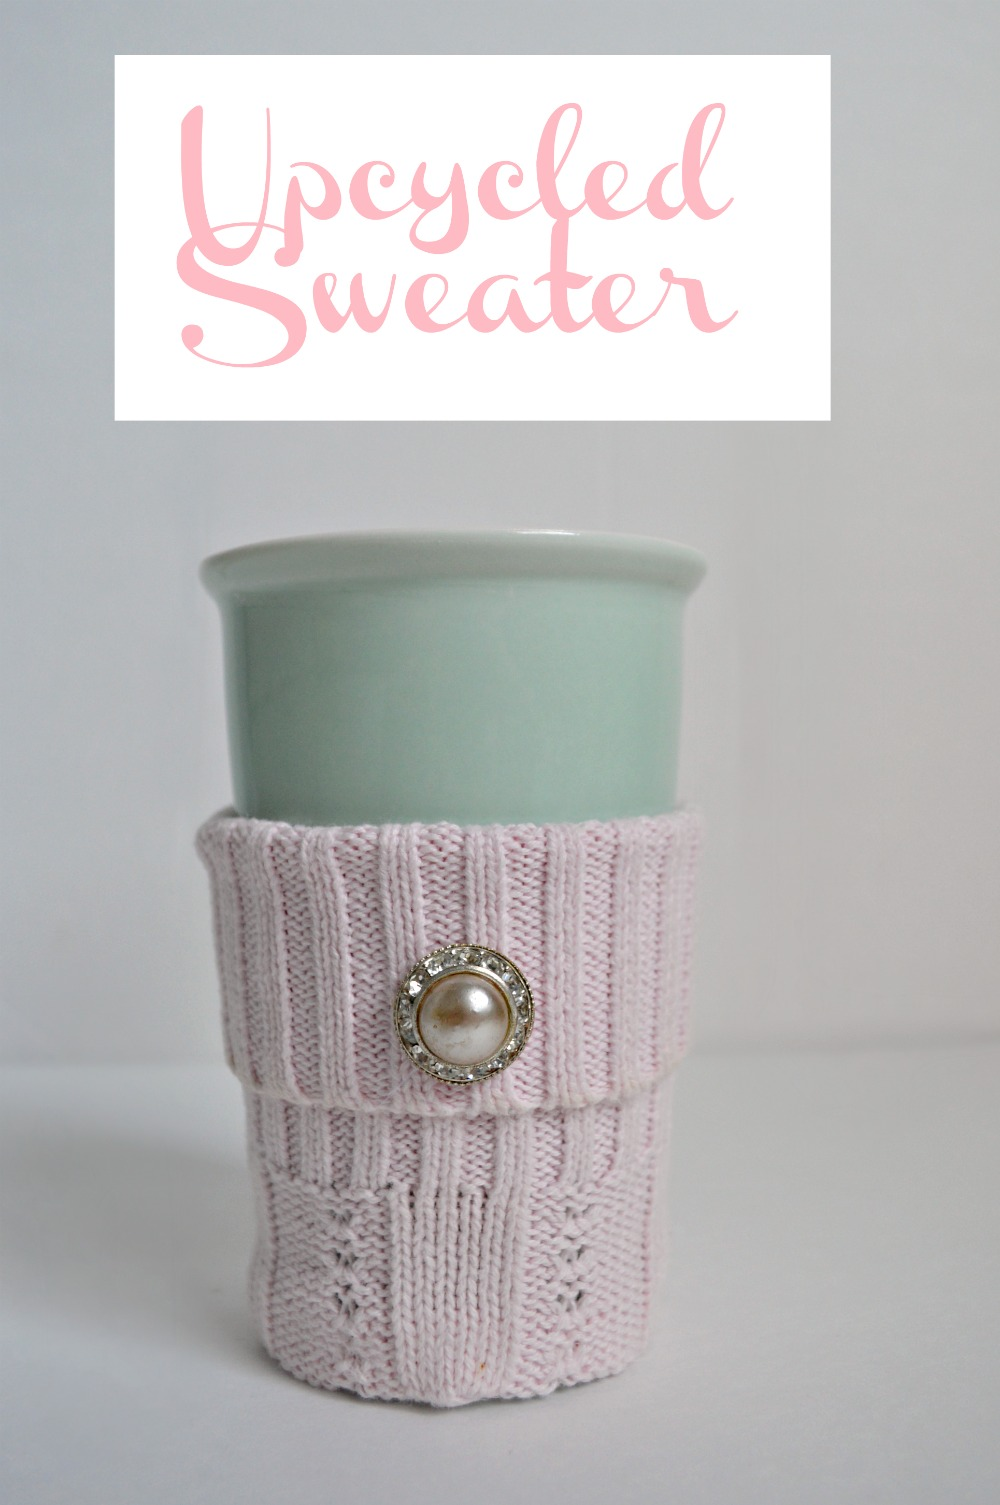 Upcycle a old sweater and turn it into a cozy coffee sleeve!